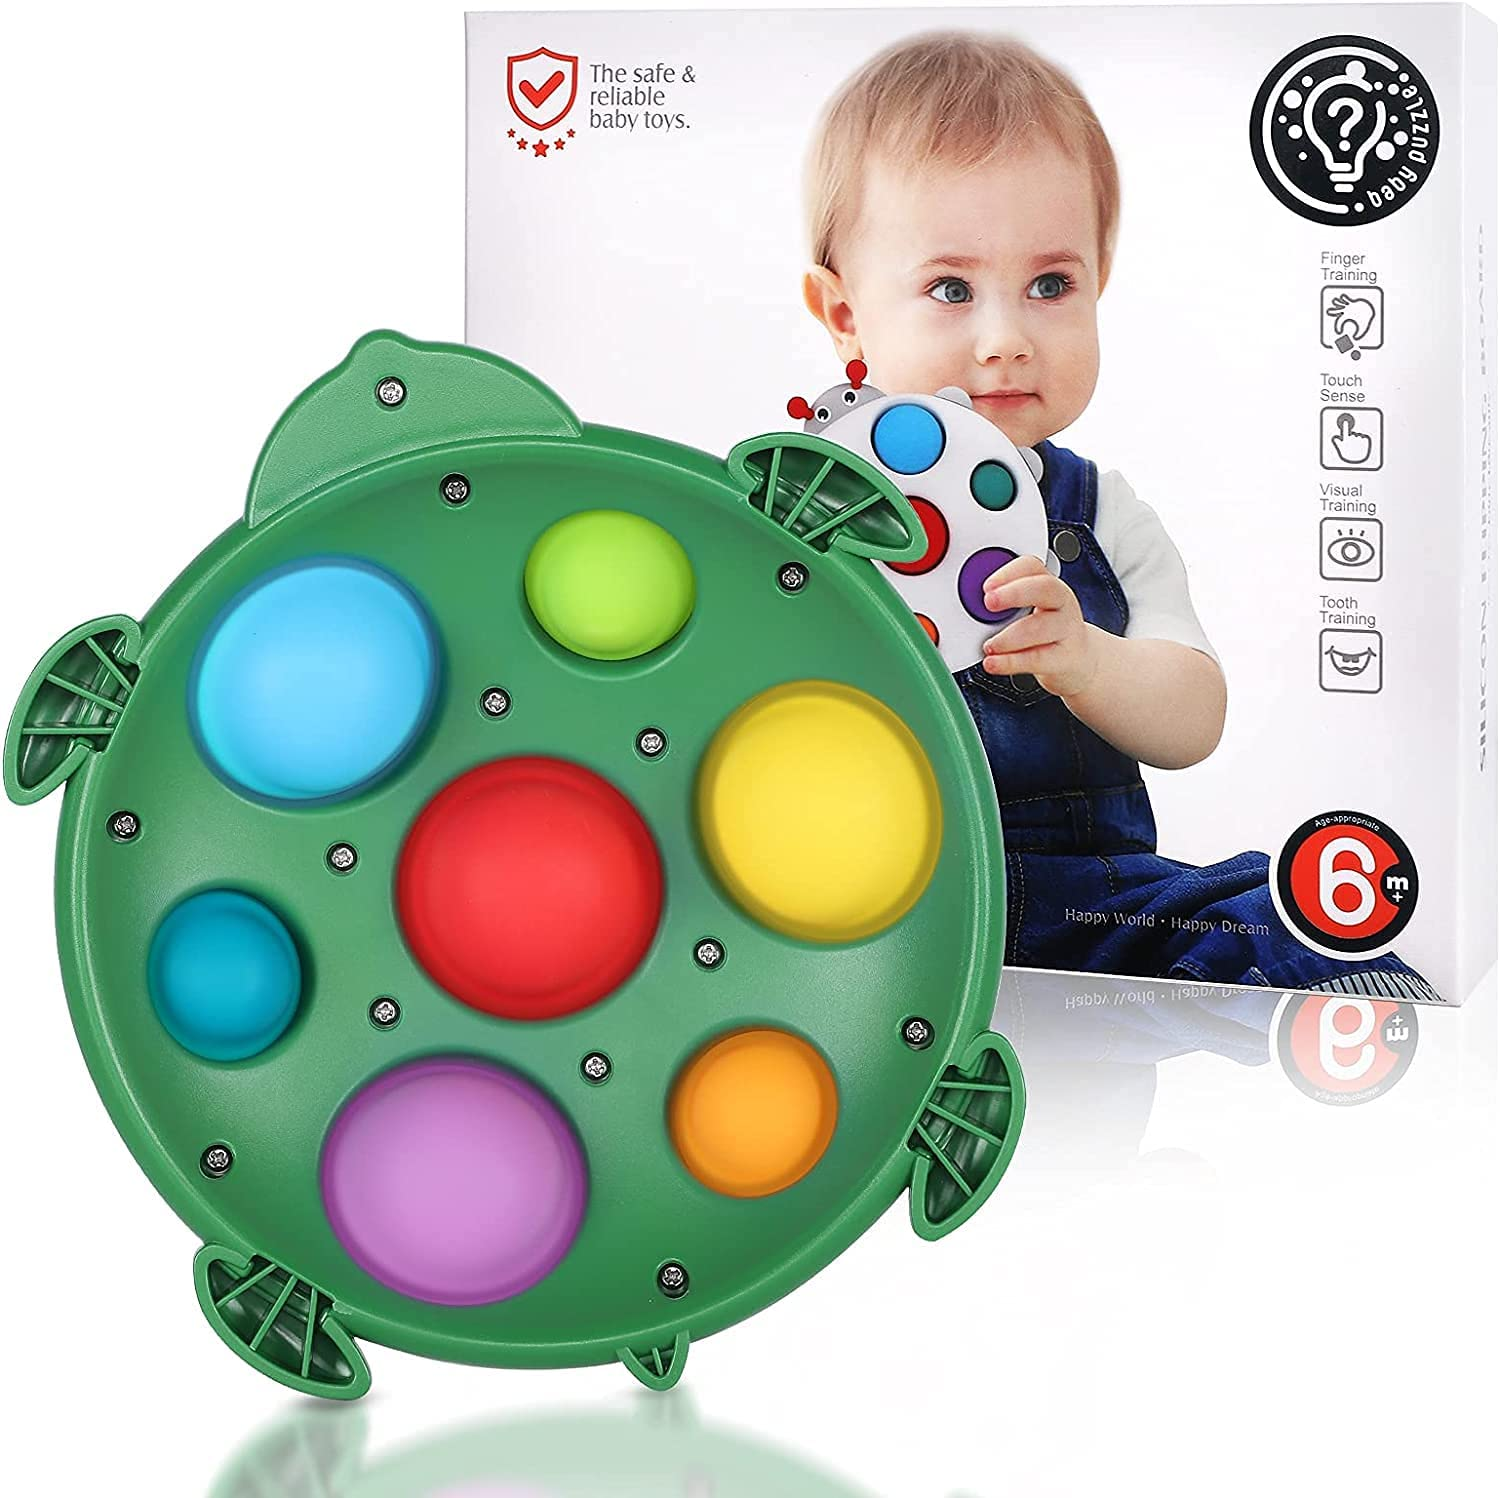 ADHD Fidget Toys Stress Relief Hand Toys Gifts for Adults and Kids Early Educational Toddler Baby Toy Kids Pop Bubble Sensory Toys Silicone Flipping Tortoise Board Baby Simple Dimple Fidget Toy